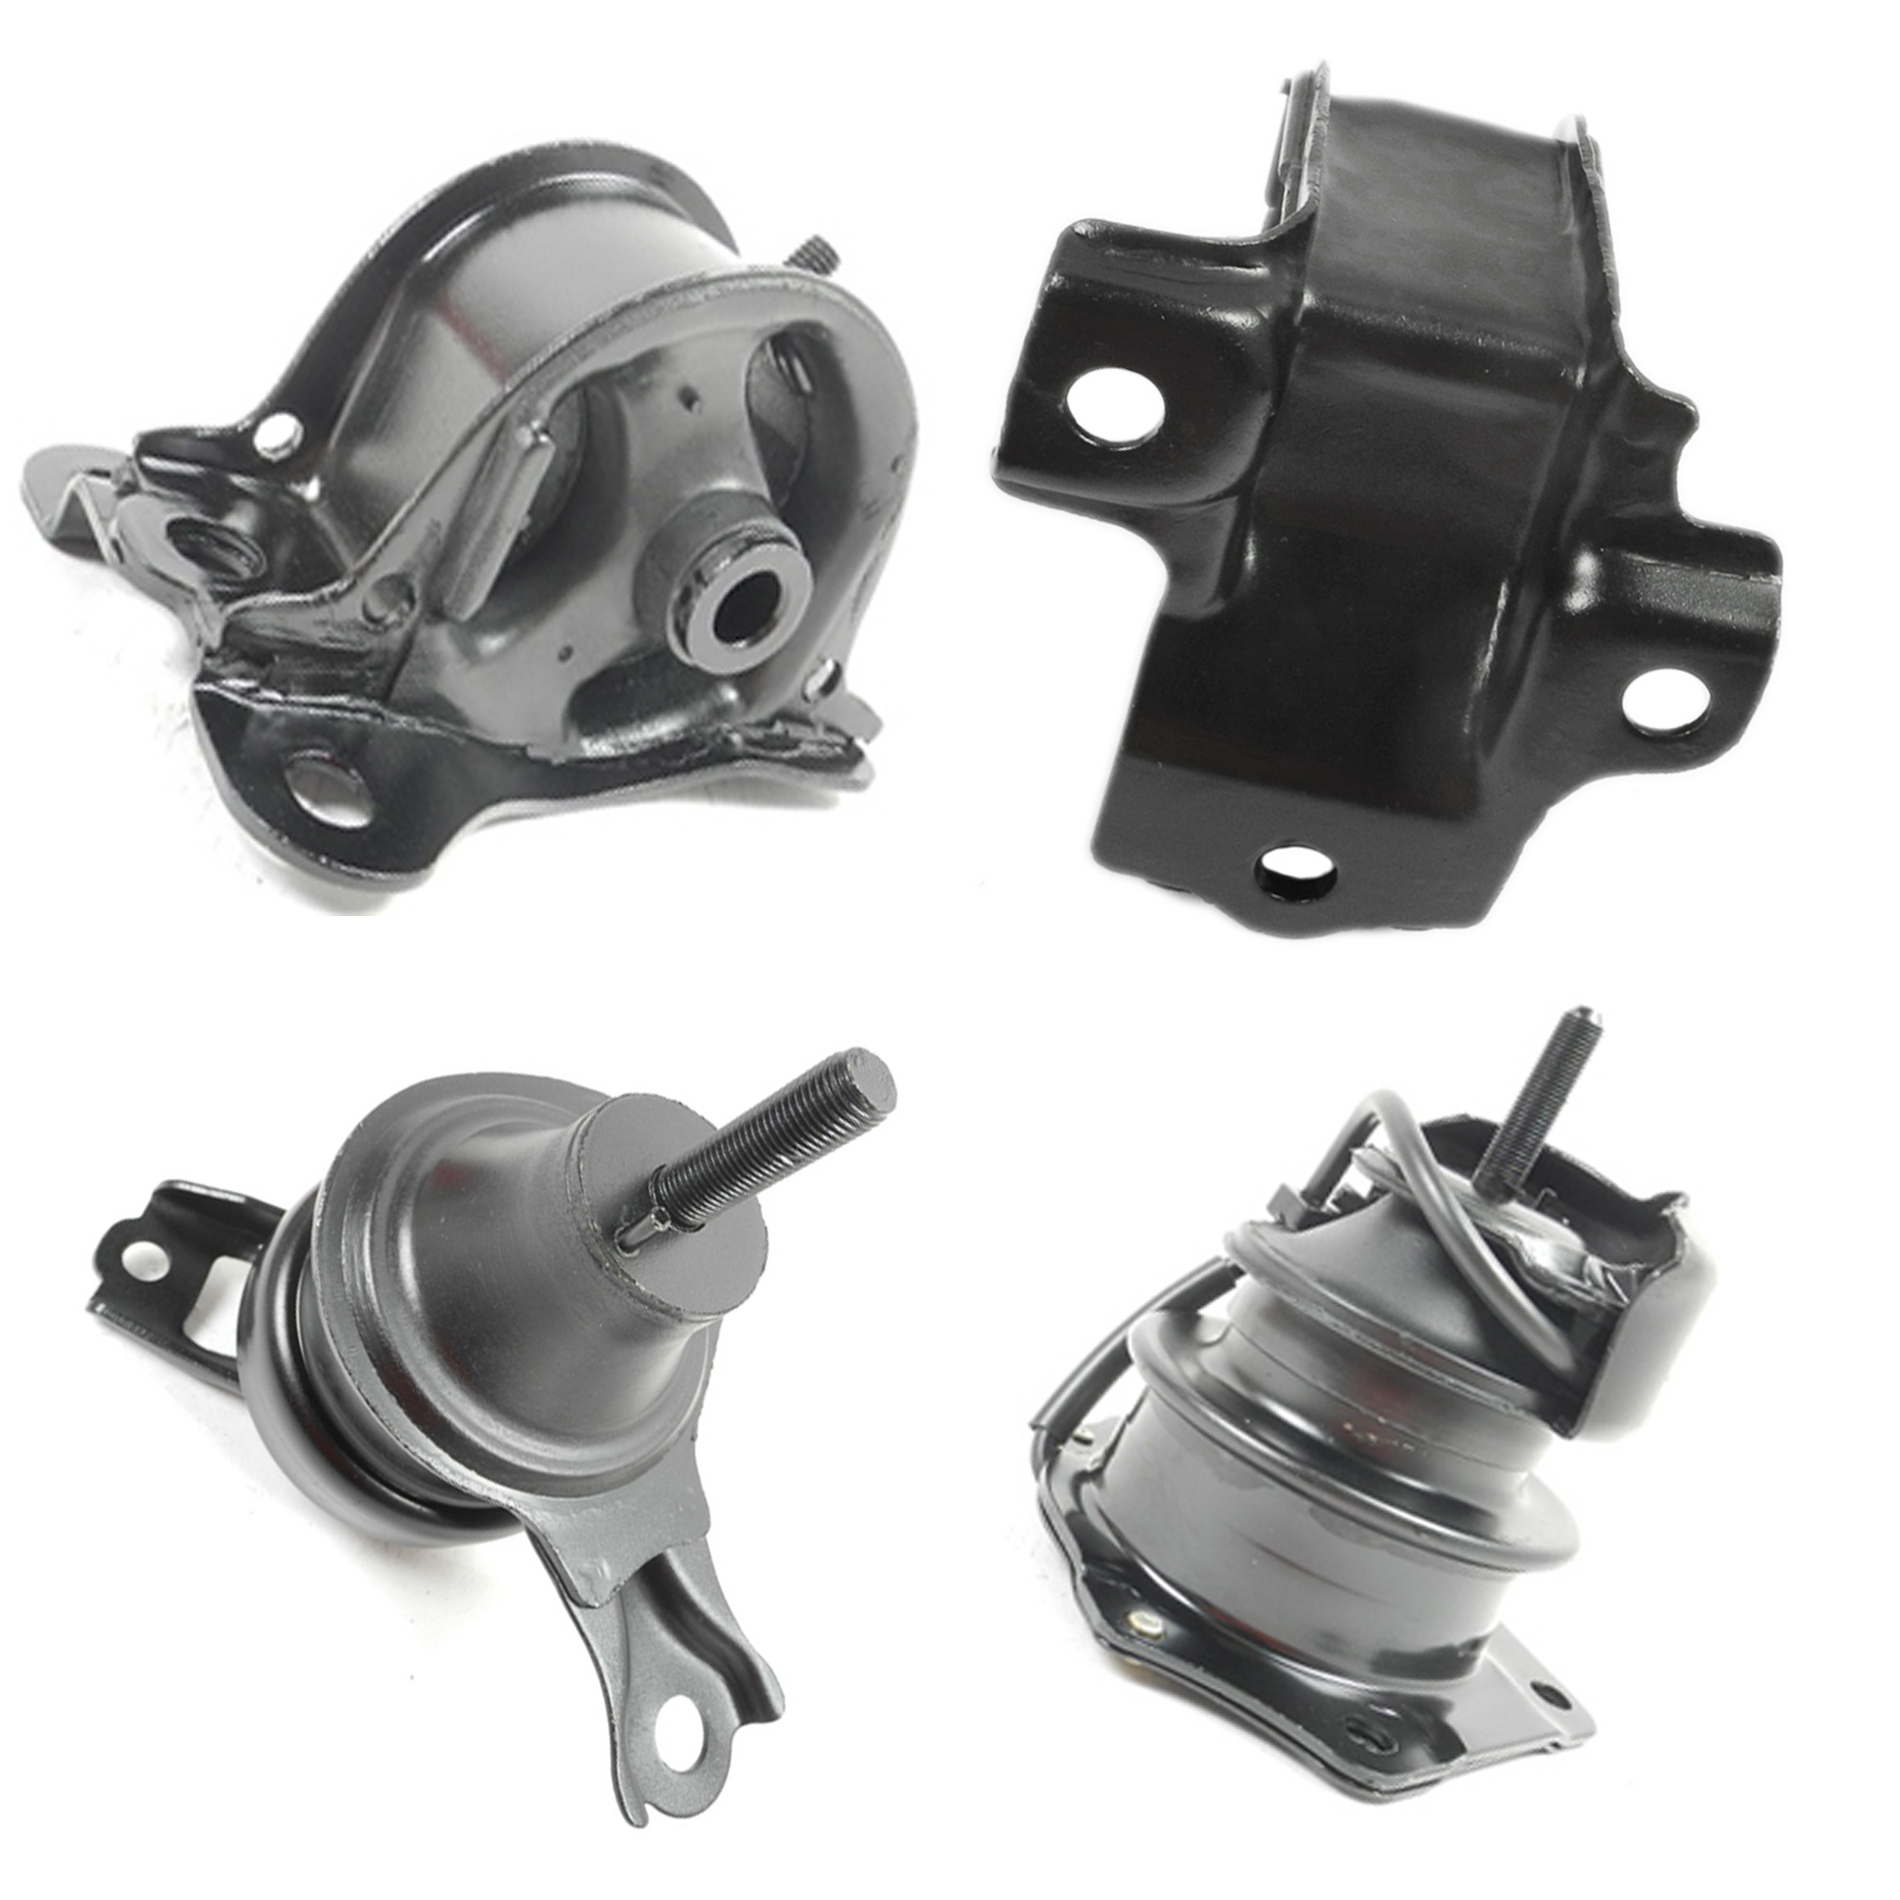 Engine  Mount For 98-99 Honda Accord 2.3L AT 6570 6572 6583 6564